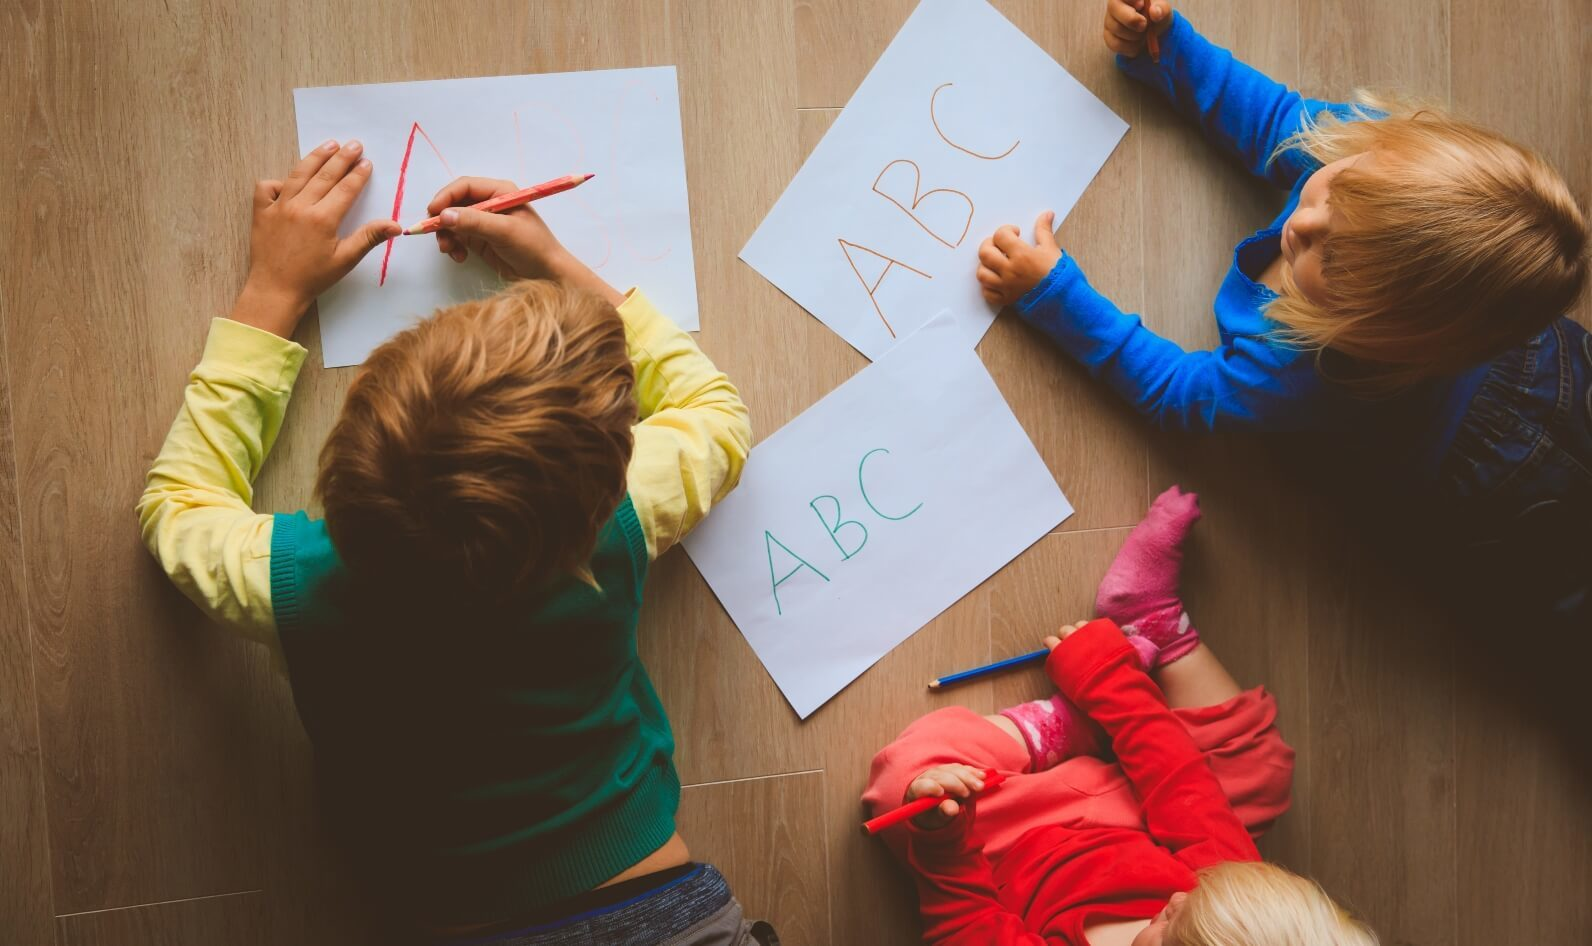 Seven Tips for Early Literacy Learning: From Knowing Your ABCs to Learning to Read | Parenting Tips & Advice | PBS KIDS for Parents